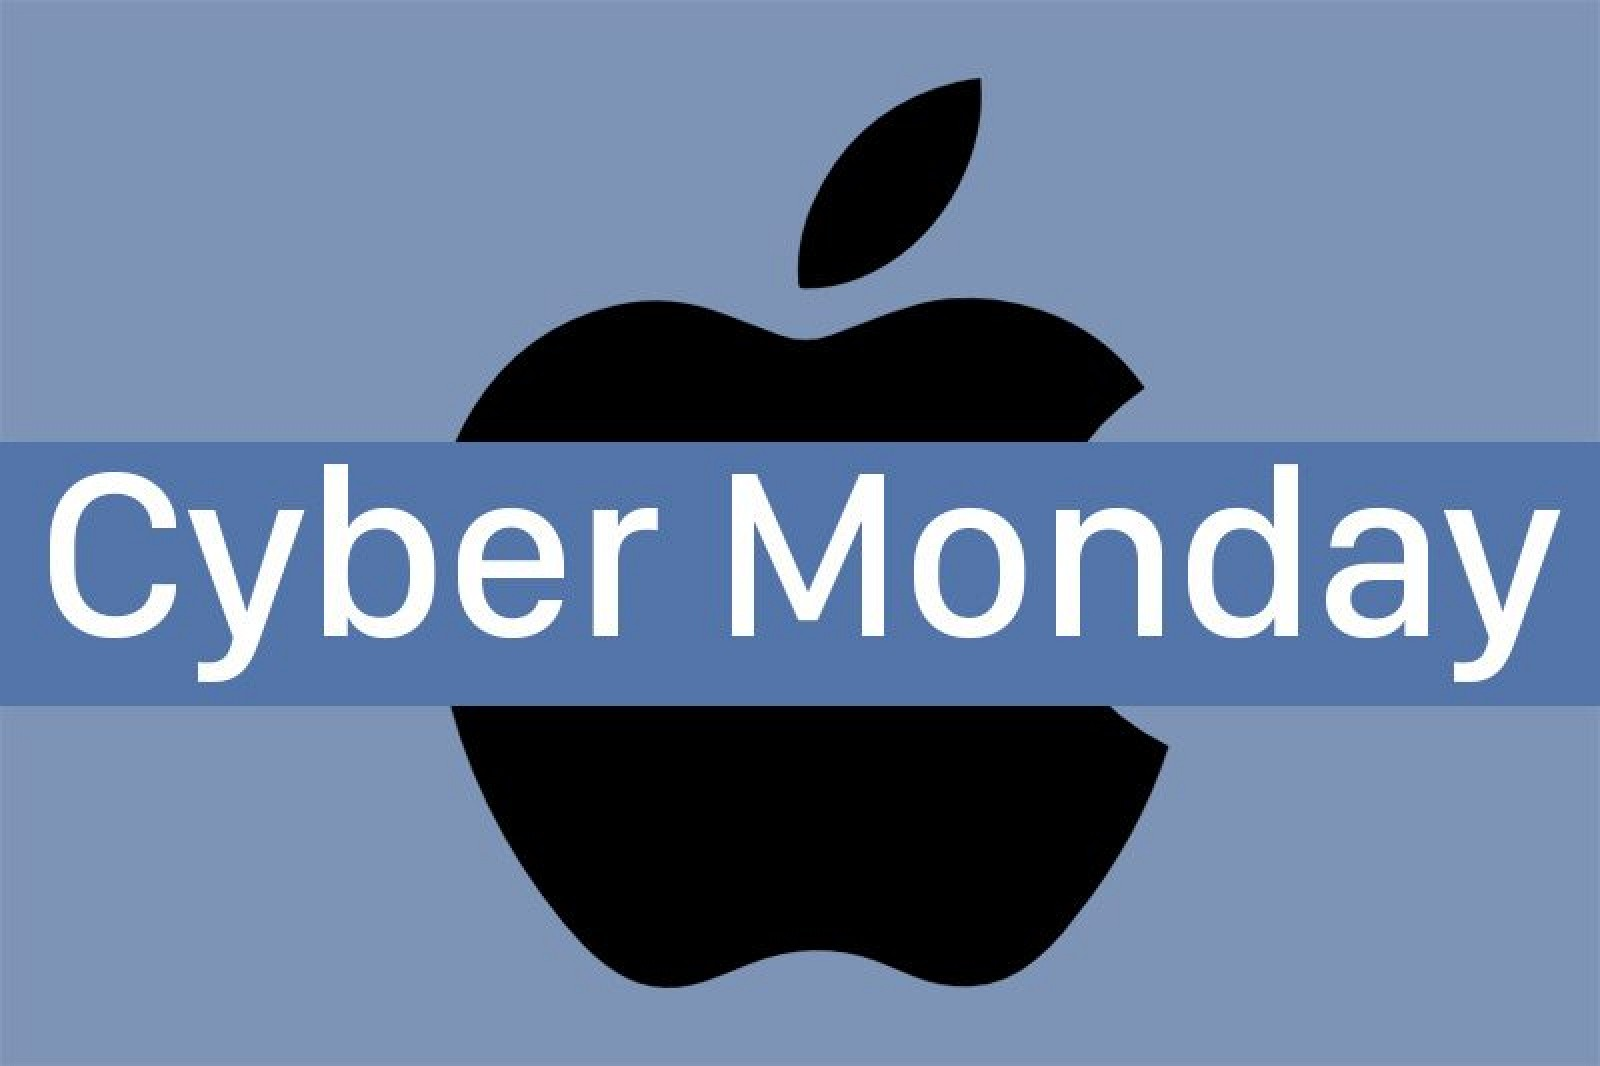 Apple Cyber Monday: Everything We Know | MacRumors